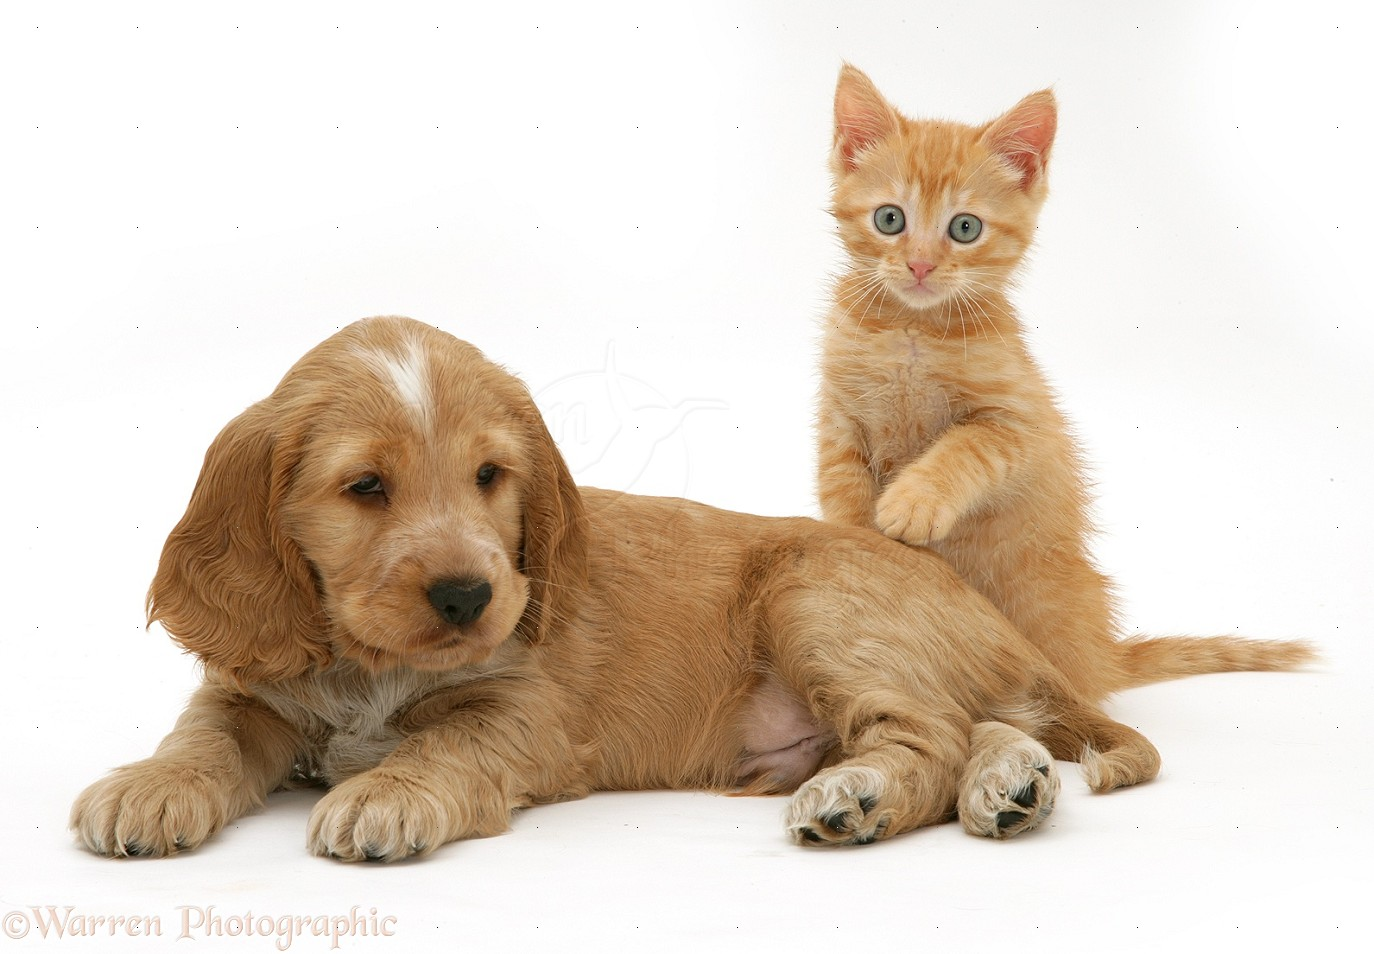 Pets Golden Cocker Spaniel Puppy And Ginger Kitten Photo Wp13176